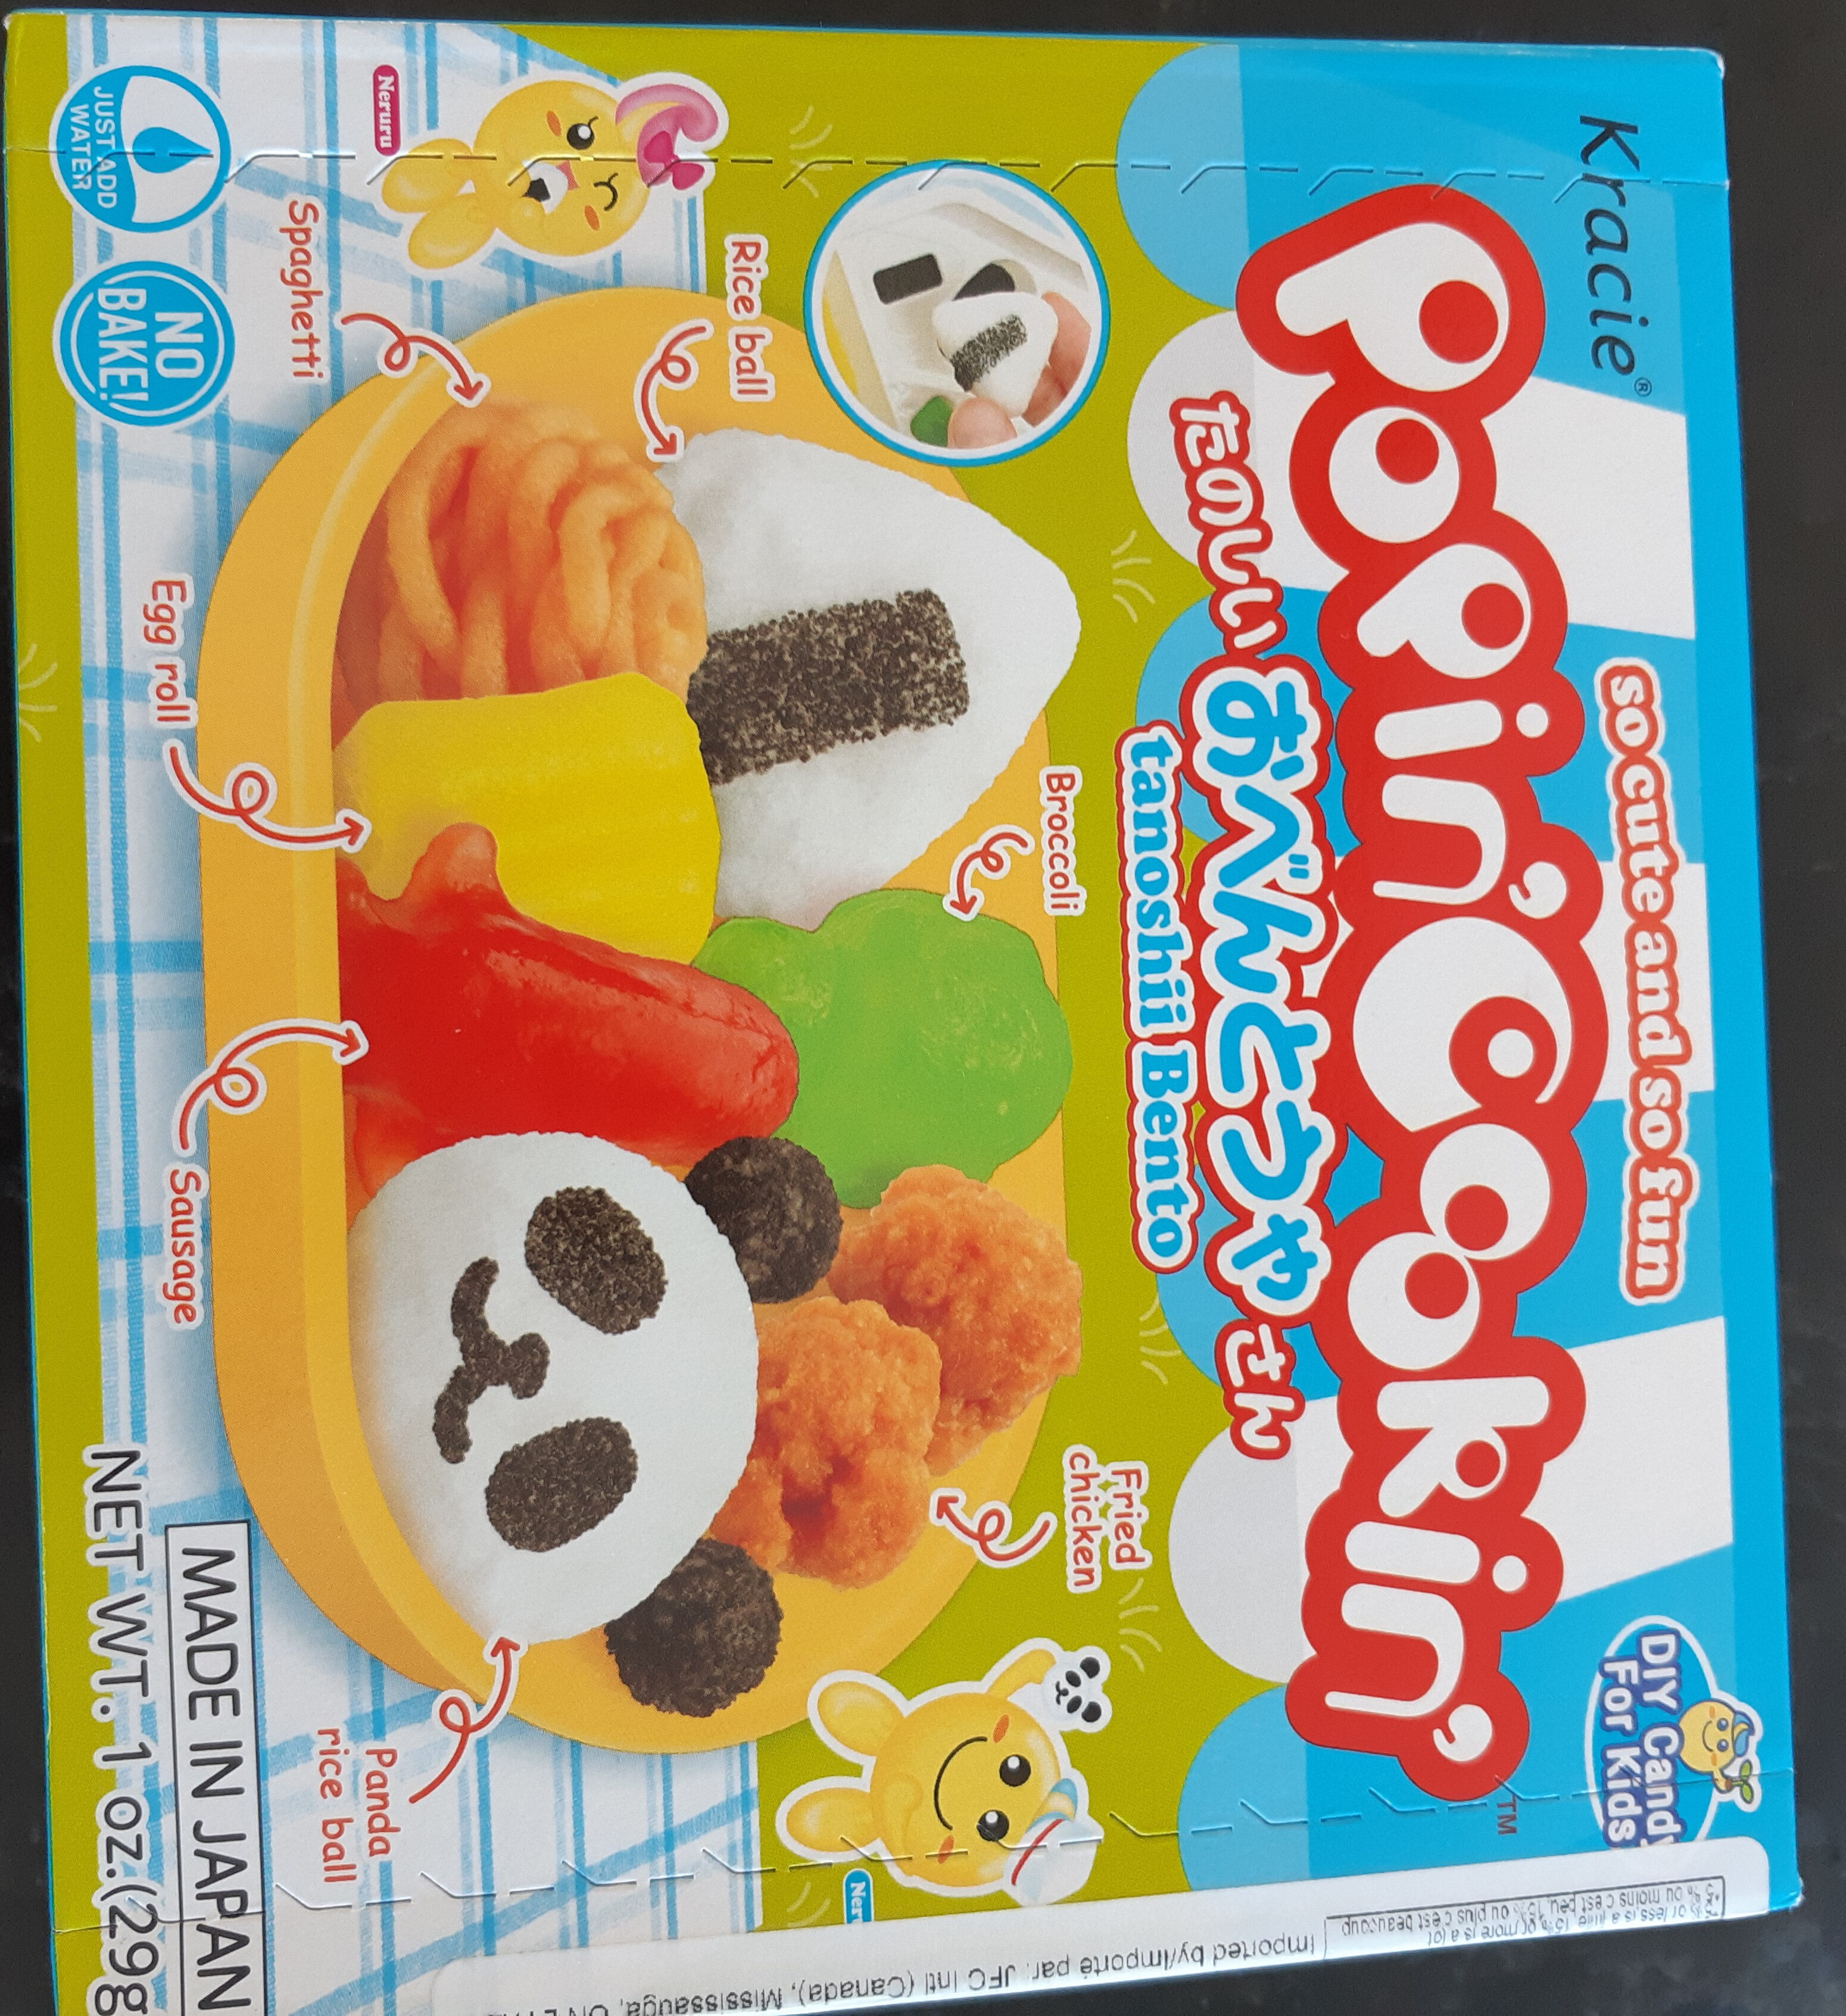 popin'cookin - Product - fr